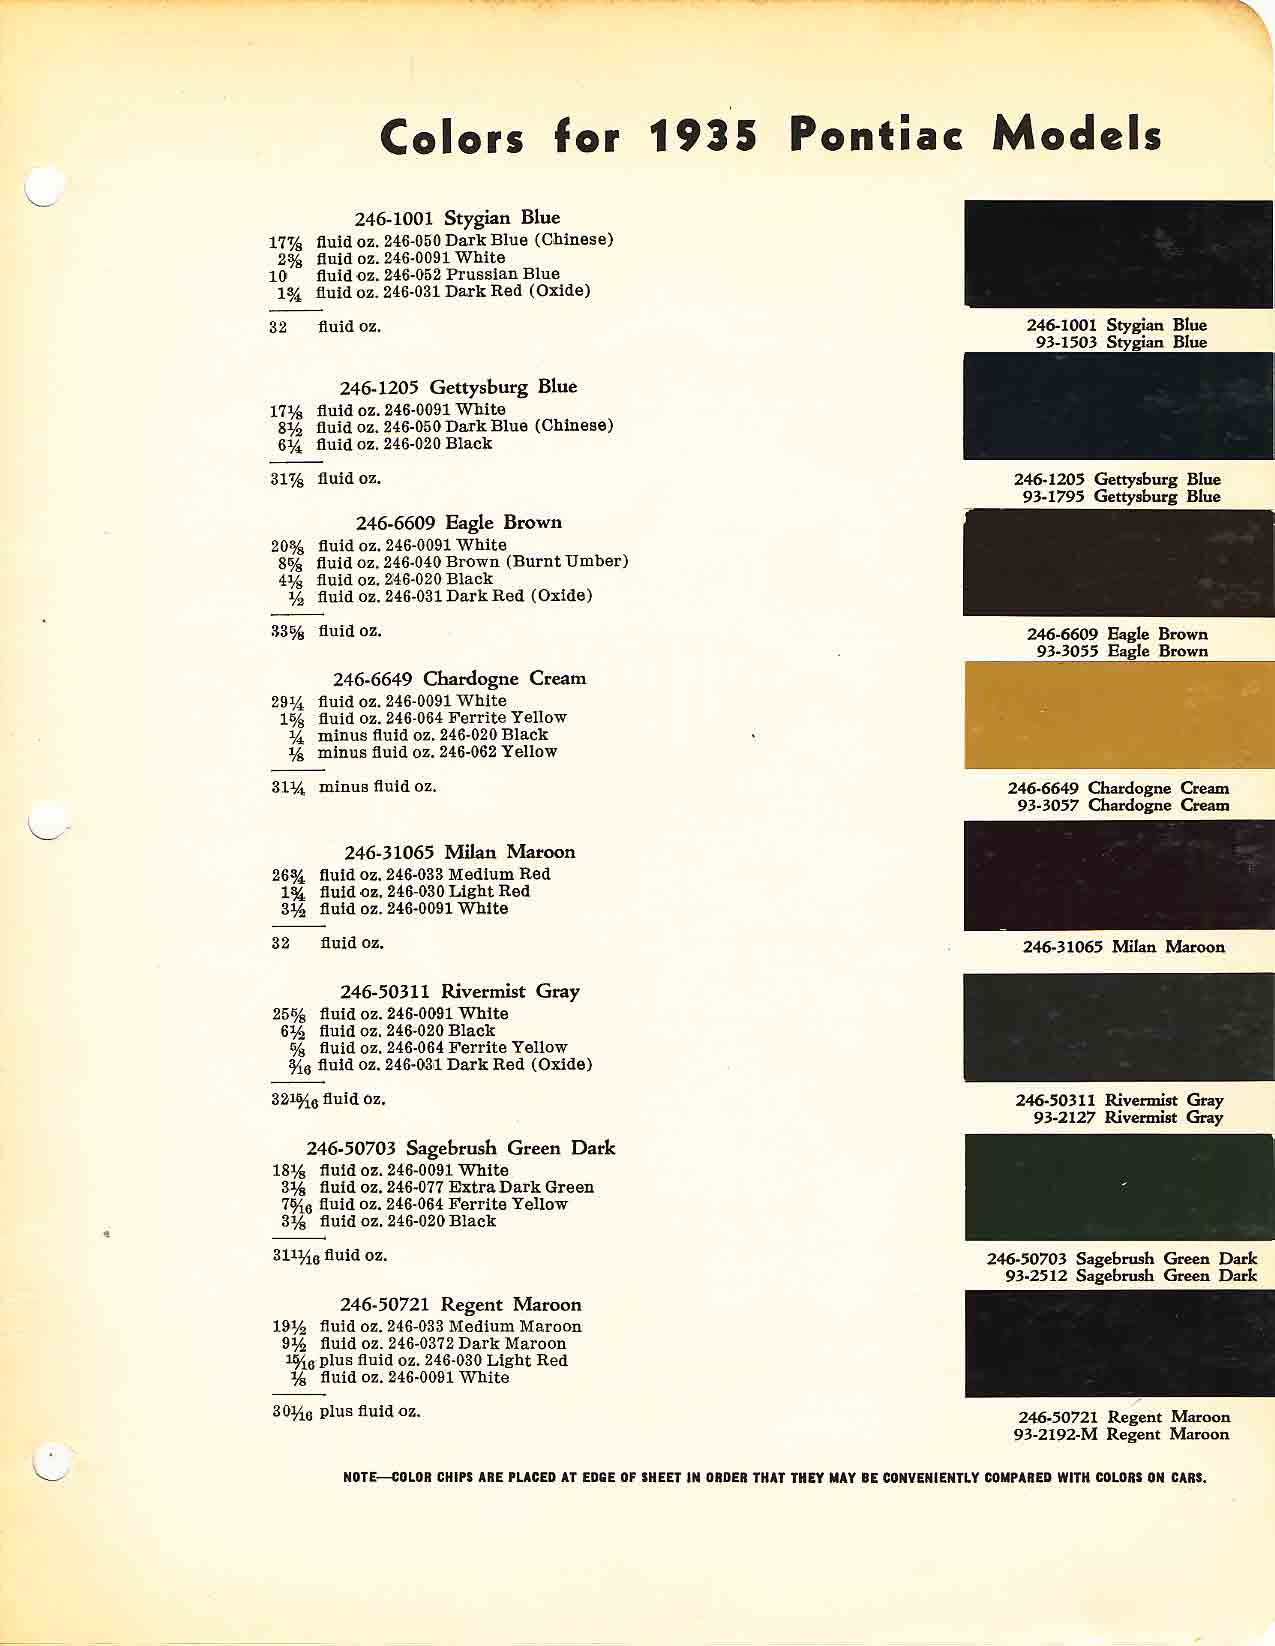 Color Code and Paint Color Chart for Pontiac for 1935